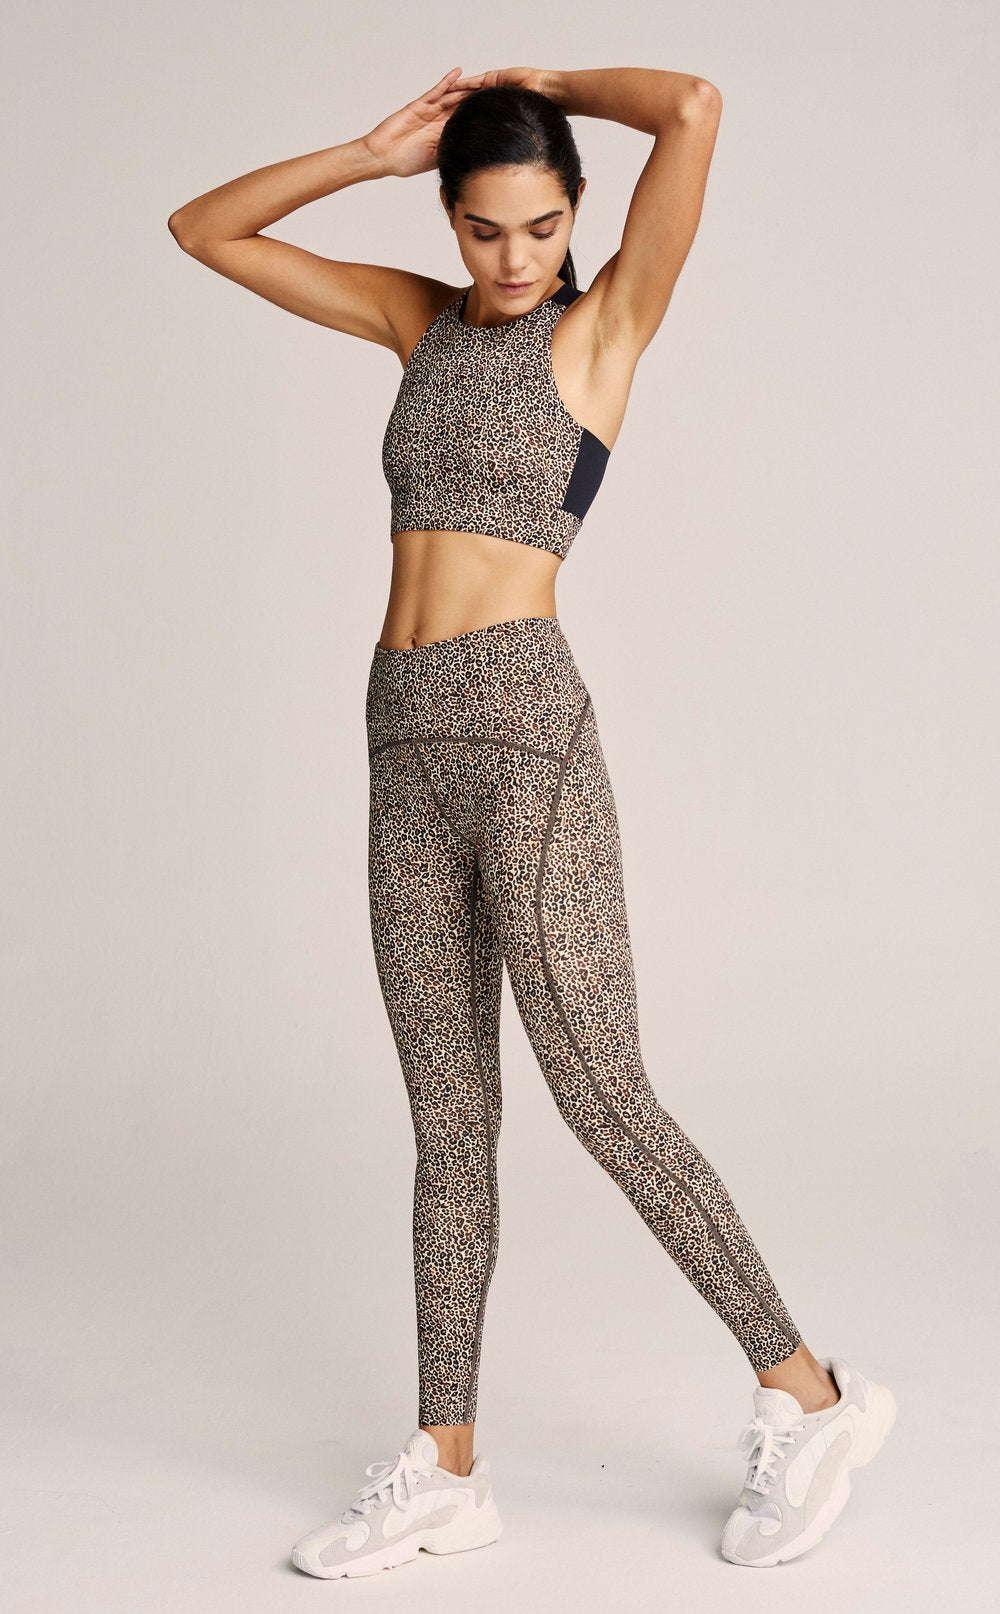 Varley Meadow Legging Mid-Rise 7/8 * Classic Leopard